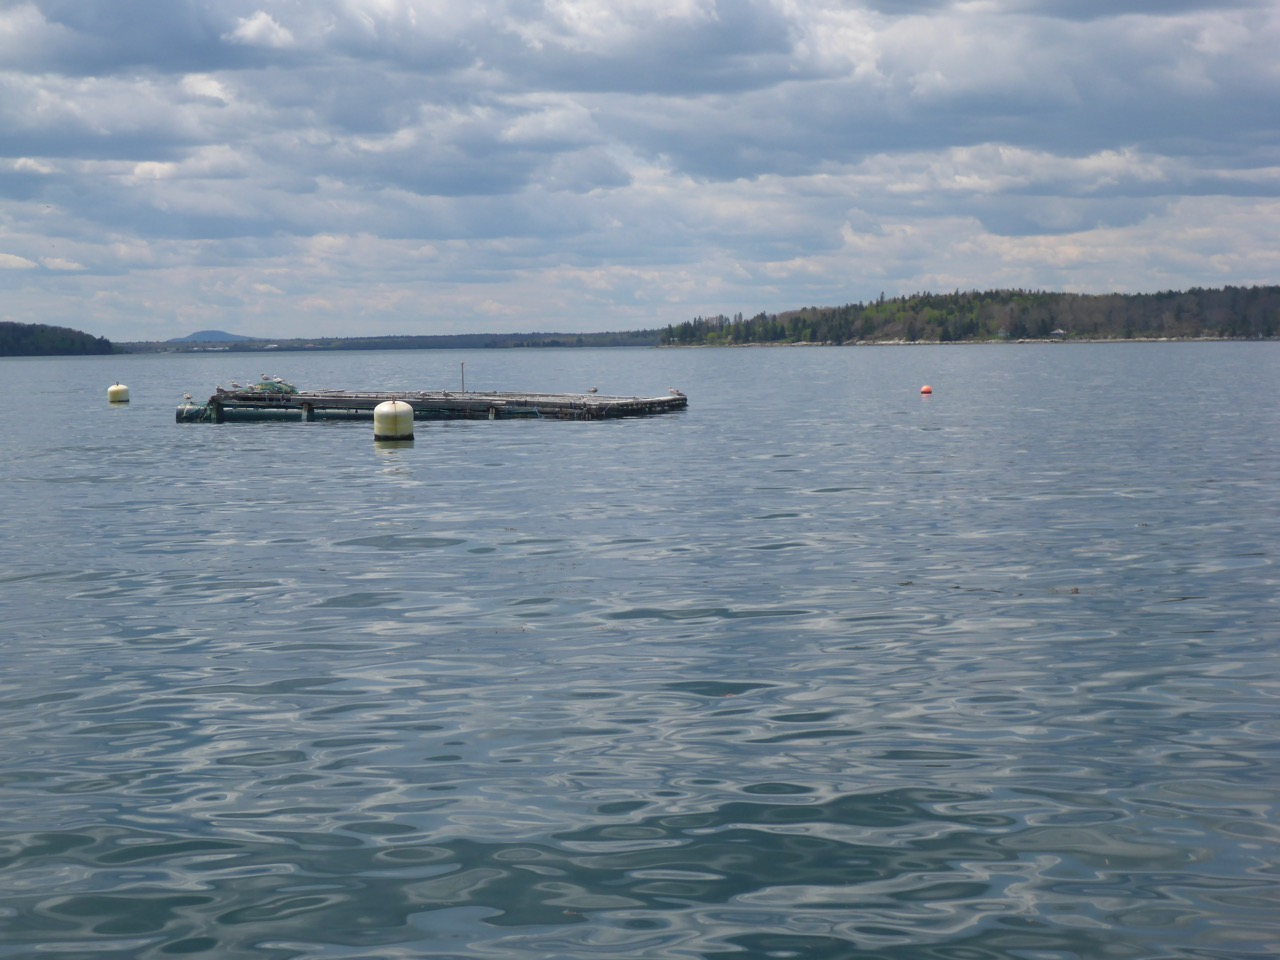 on the water view of a mussel raft in a bay with land in the background